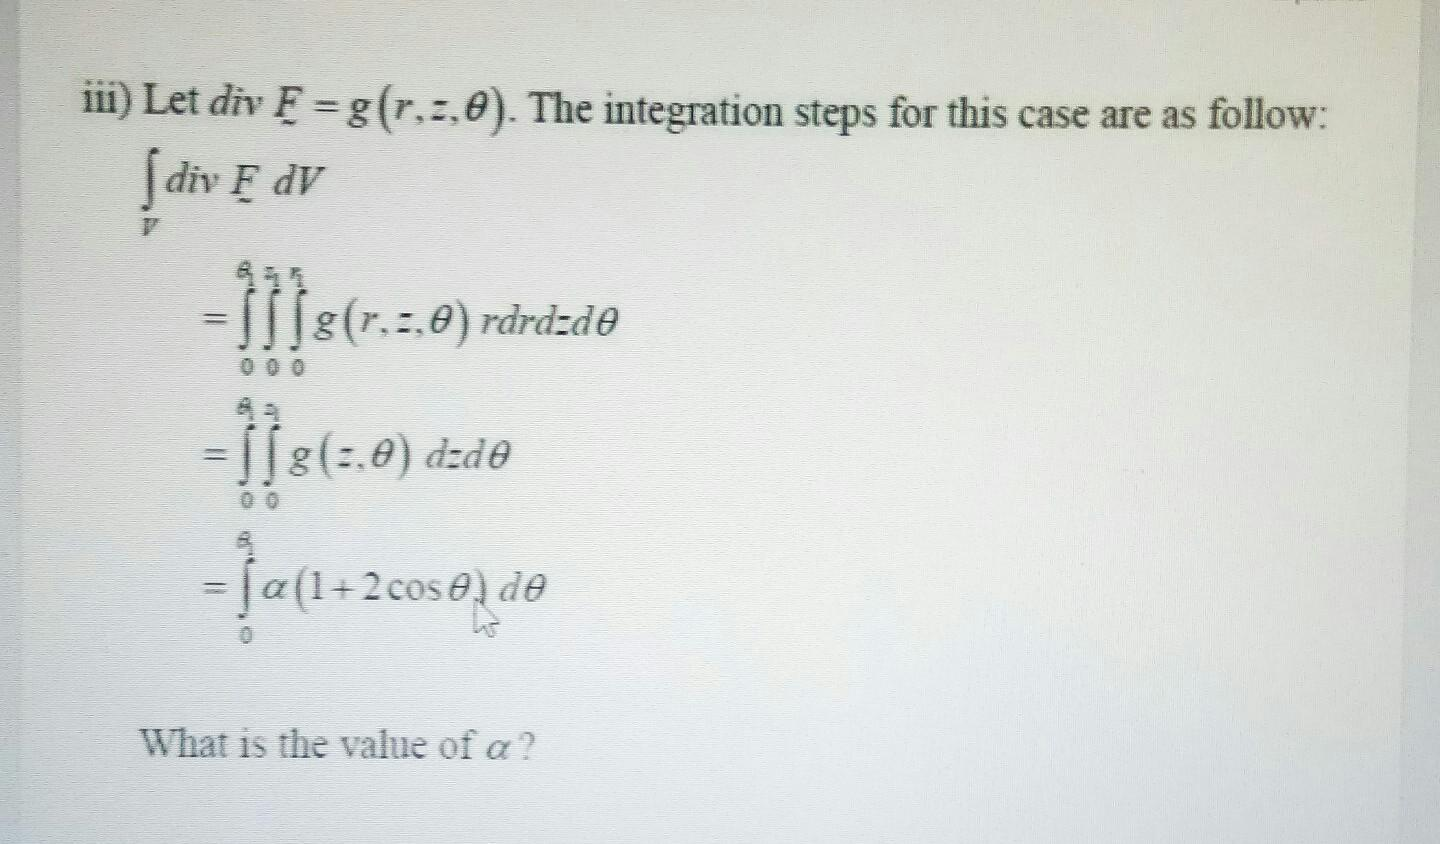 iii) Let div F =g(r.2.0). The integration steps for this case are as follow: diy F DV 1118(7.3.0 ) rdrd:de f}1= - ļa(1+2coso